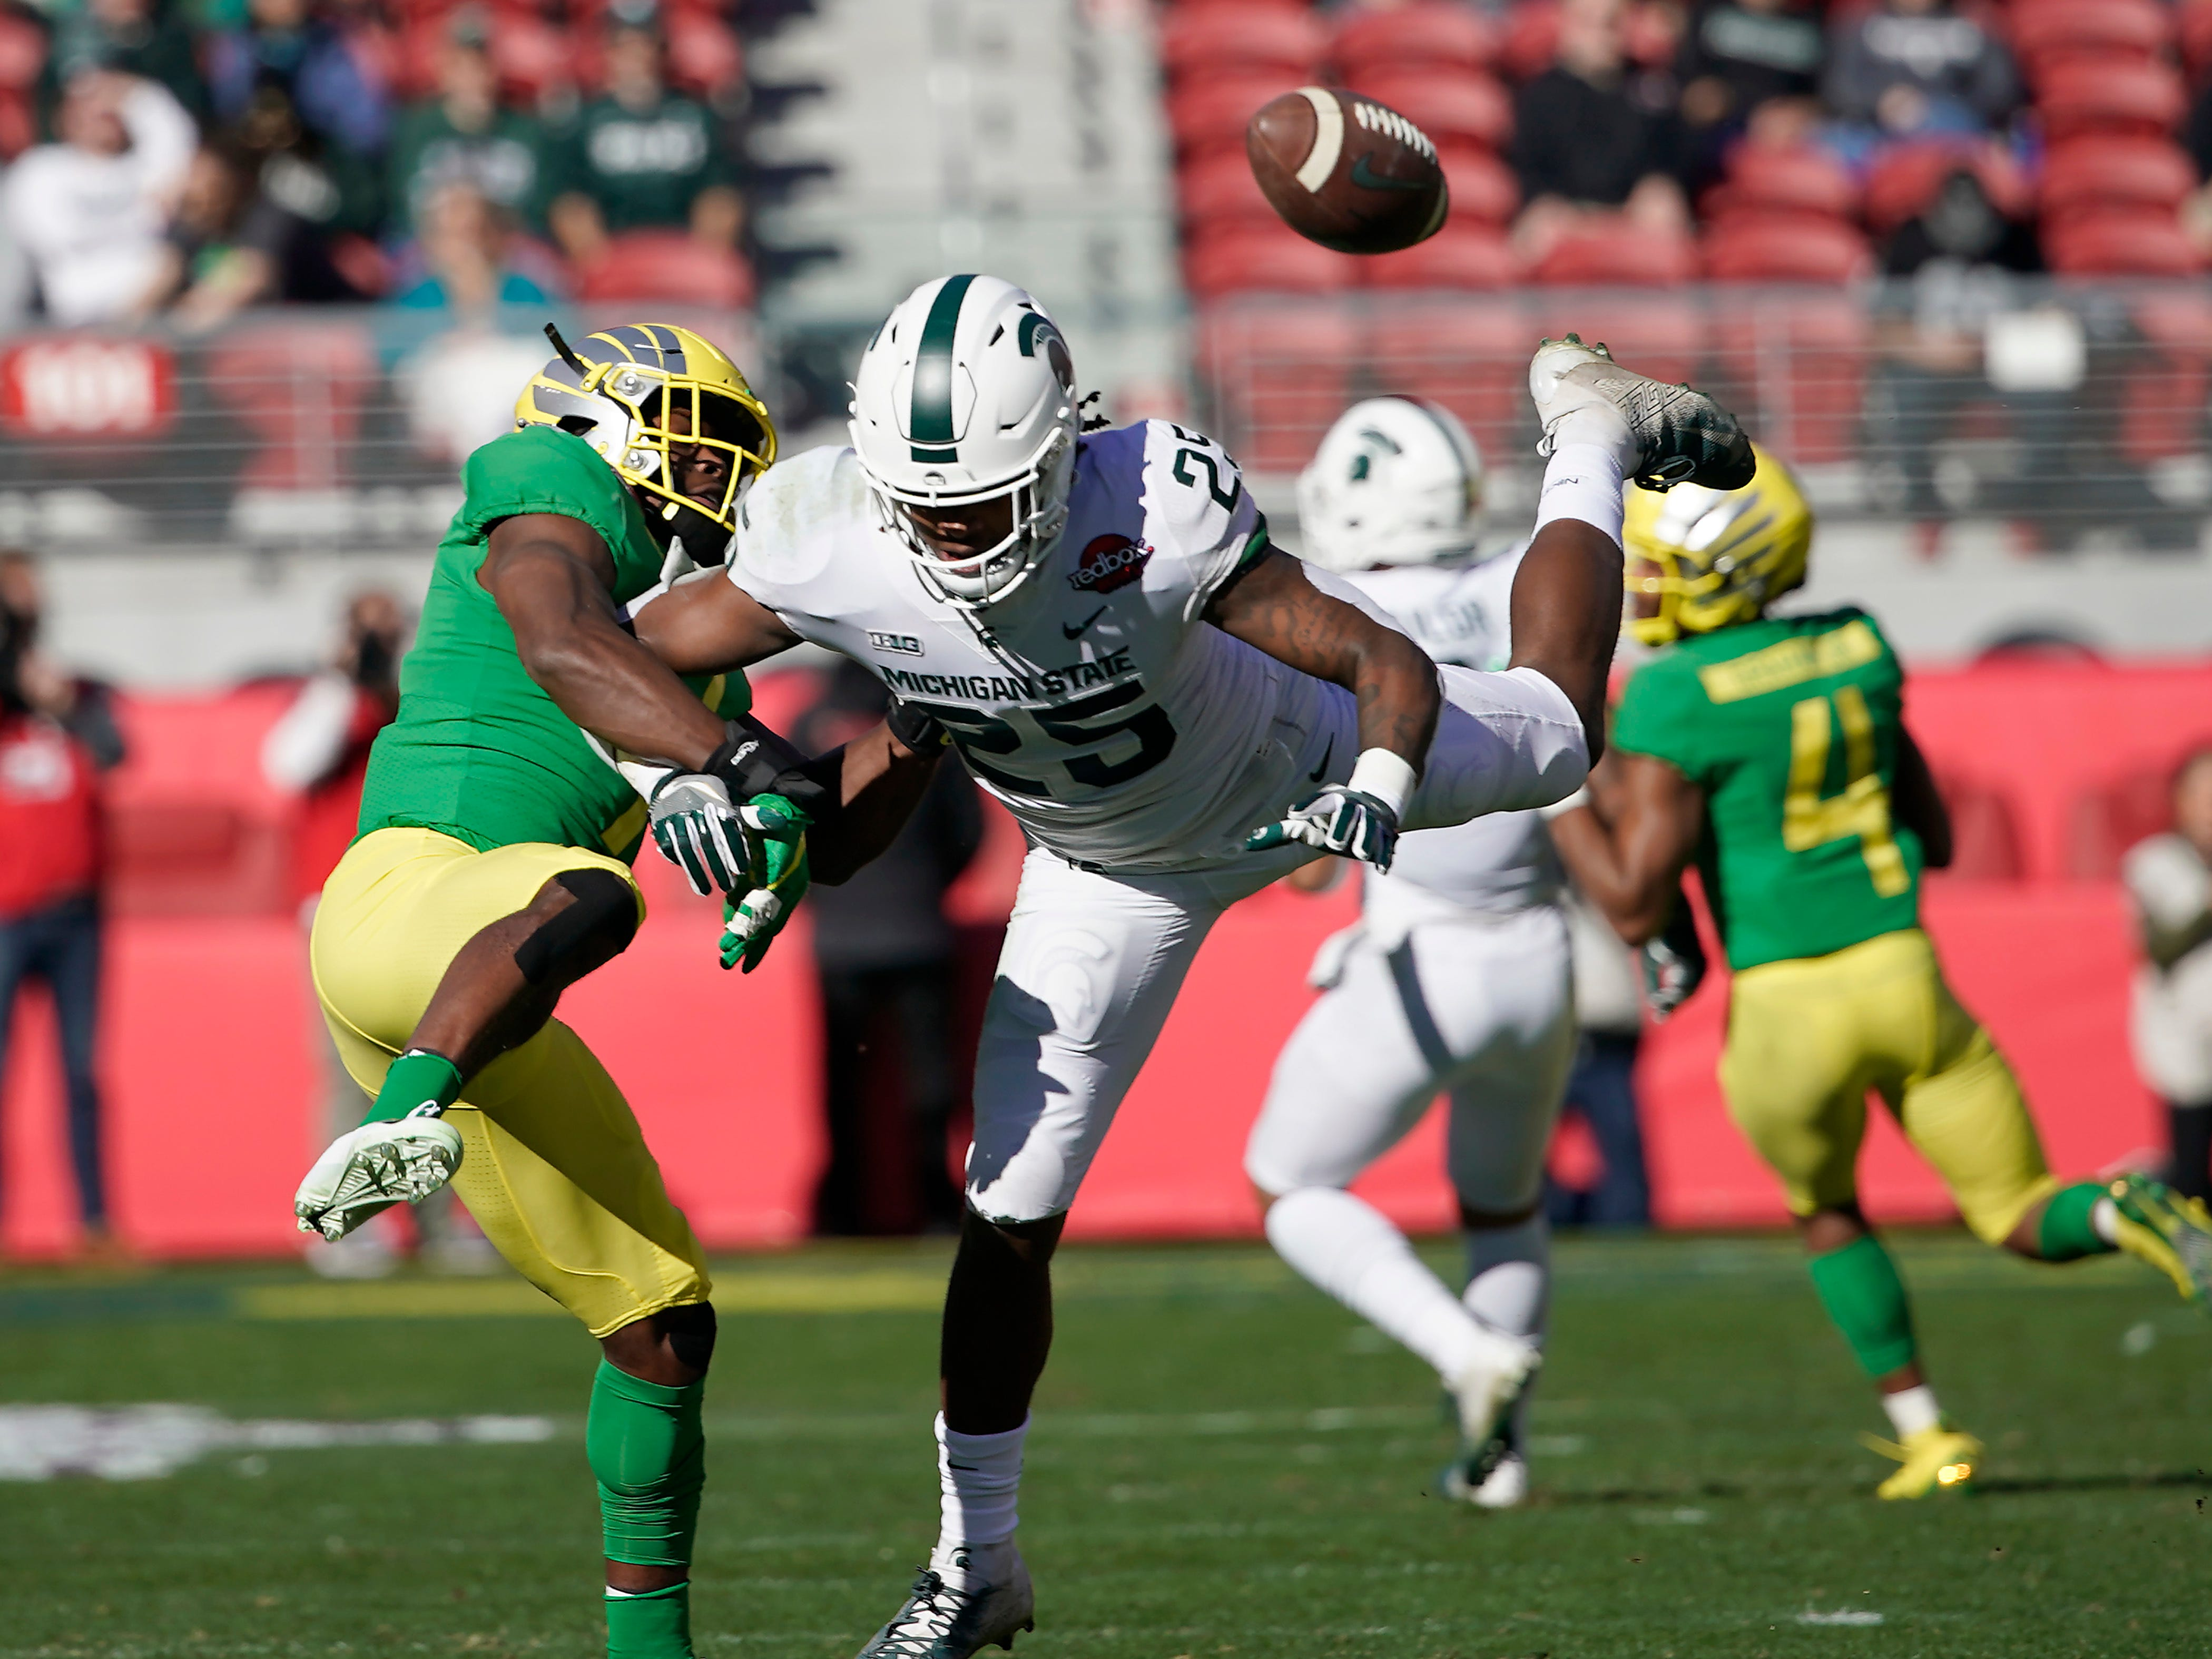 Oregon Ducks safety Ugochukwu Amadi (7) breaks up a pass for Michigan State Spartans wide receiver Darrell Stewart Jr. (25) during the first half of the Redbox Bowl NCAA college football game Monday, Dec. 31, 2018, in Santa Clara, Calif.